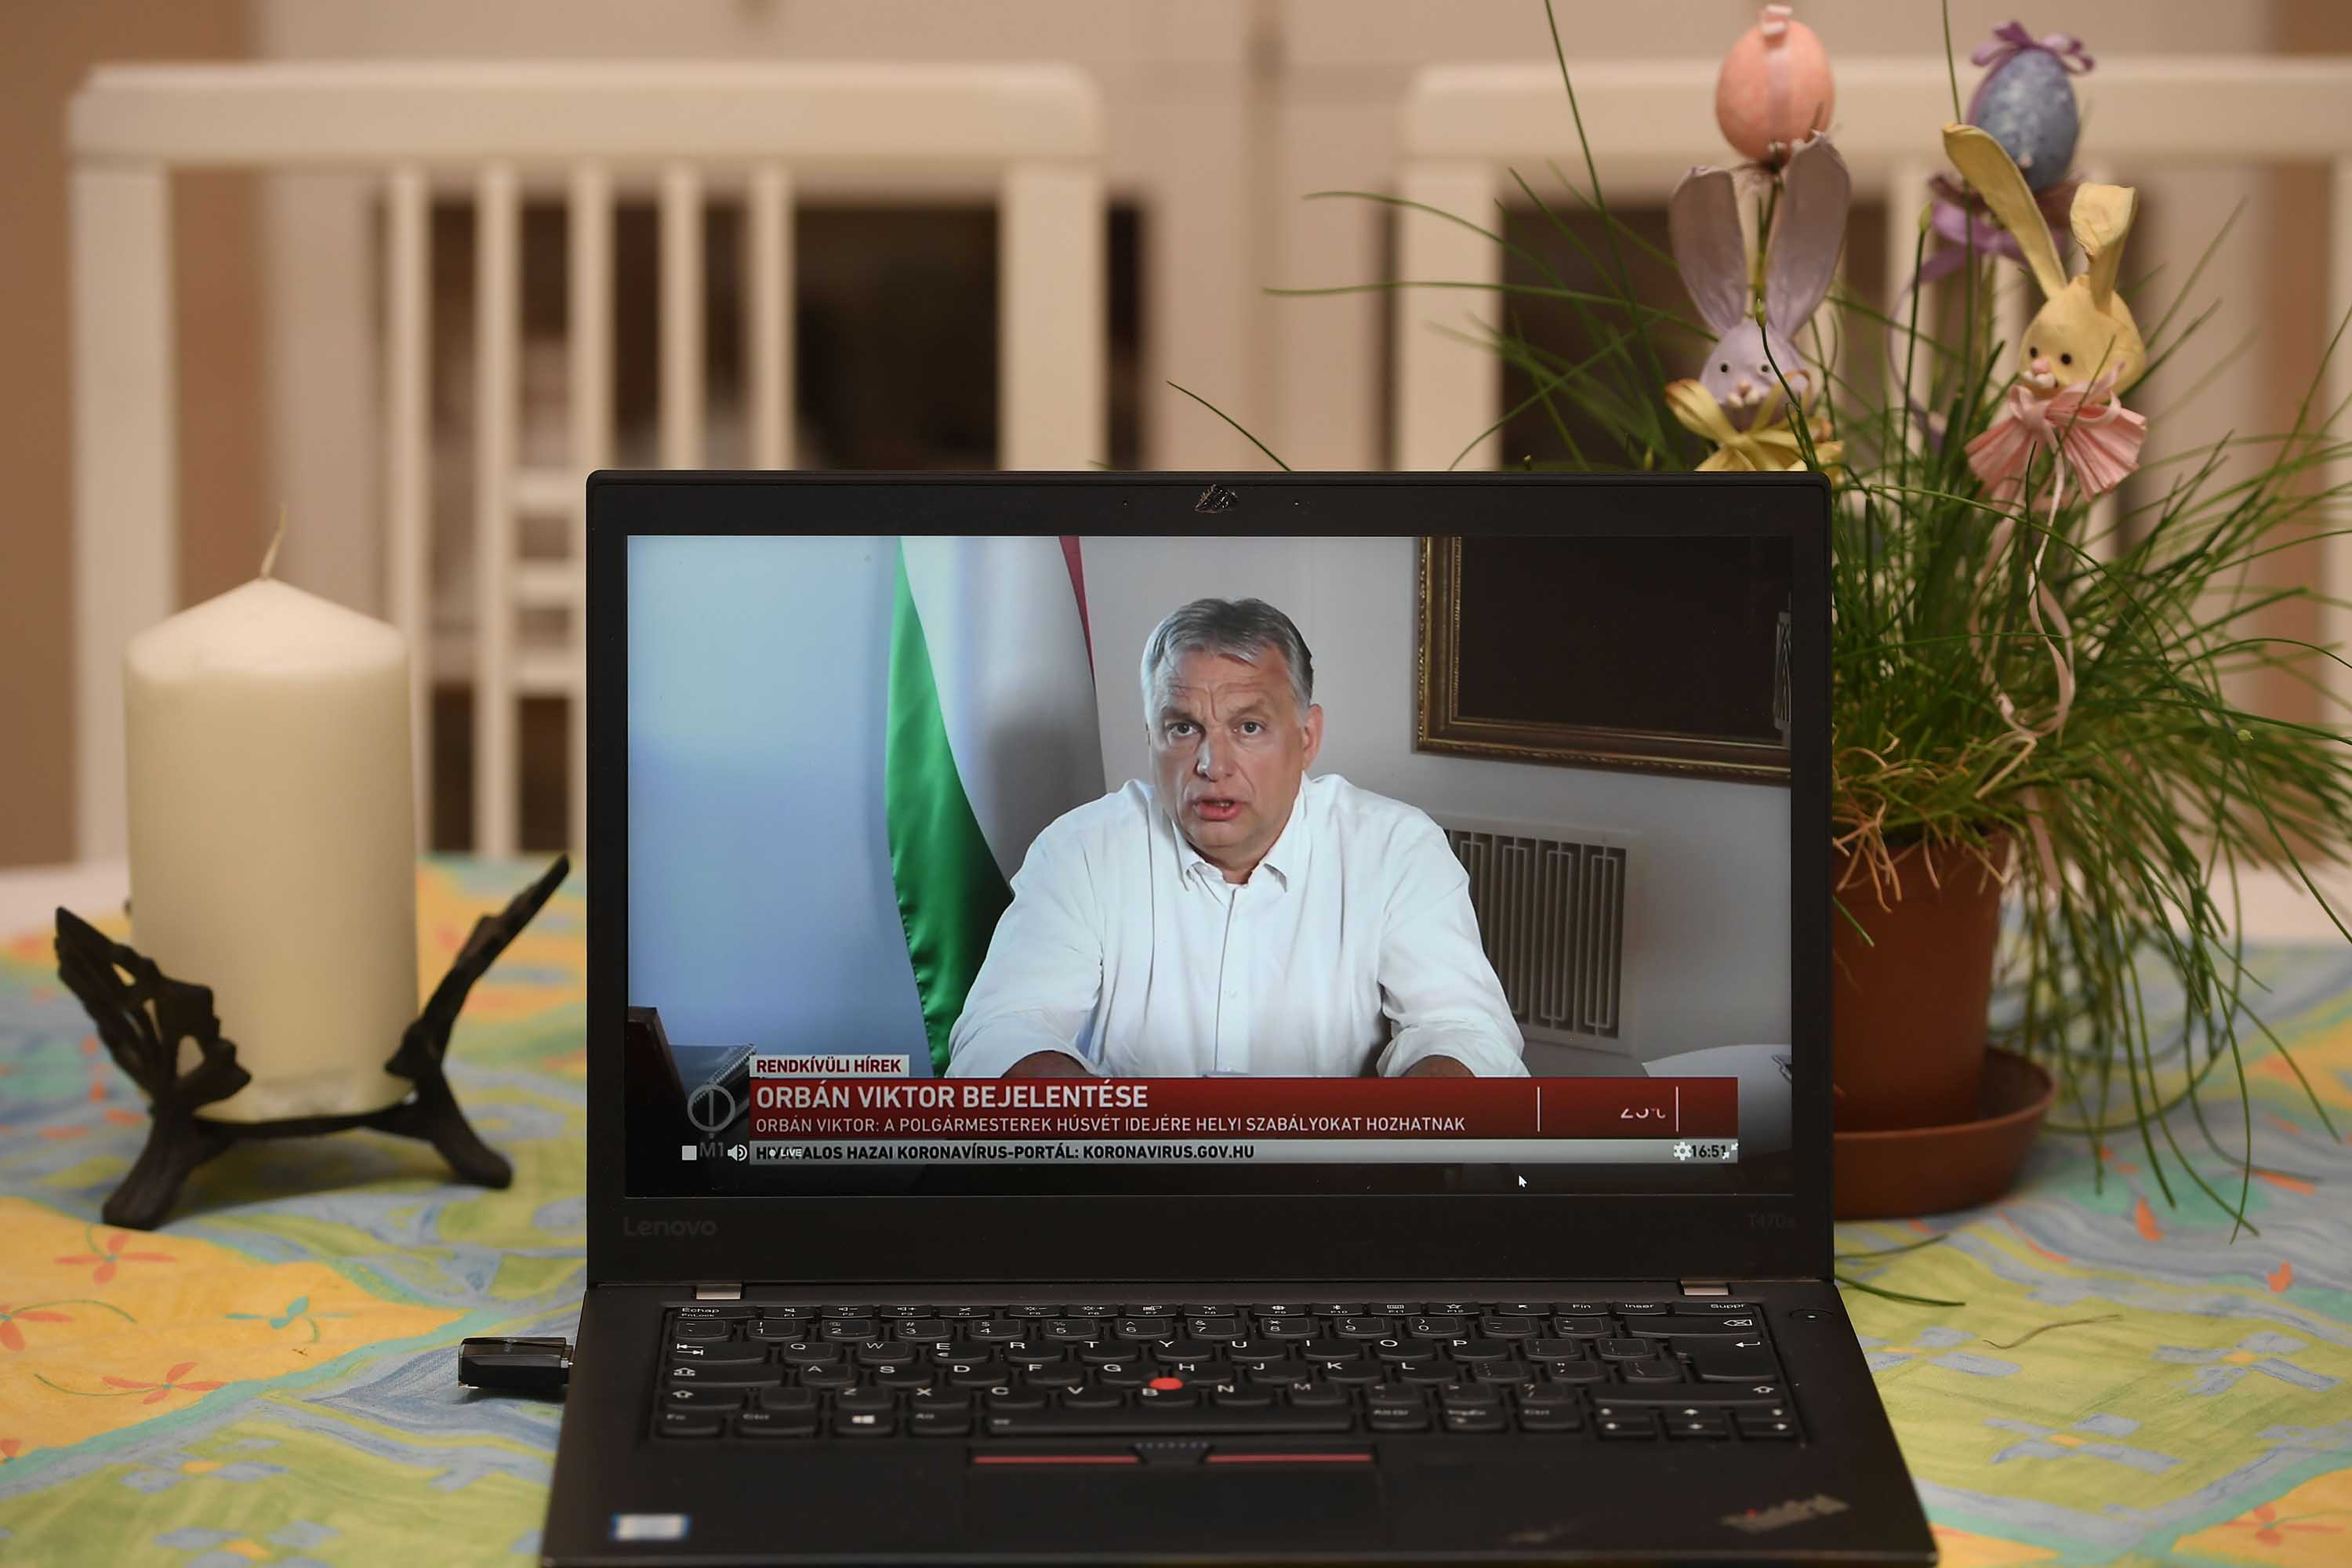 Hungarian Prime Minister Viktor Orban is pictured on a laptop in a flat in Budapest, as he makes an announcement on April 9.